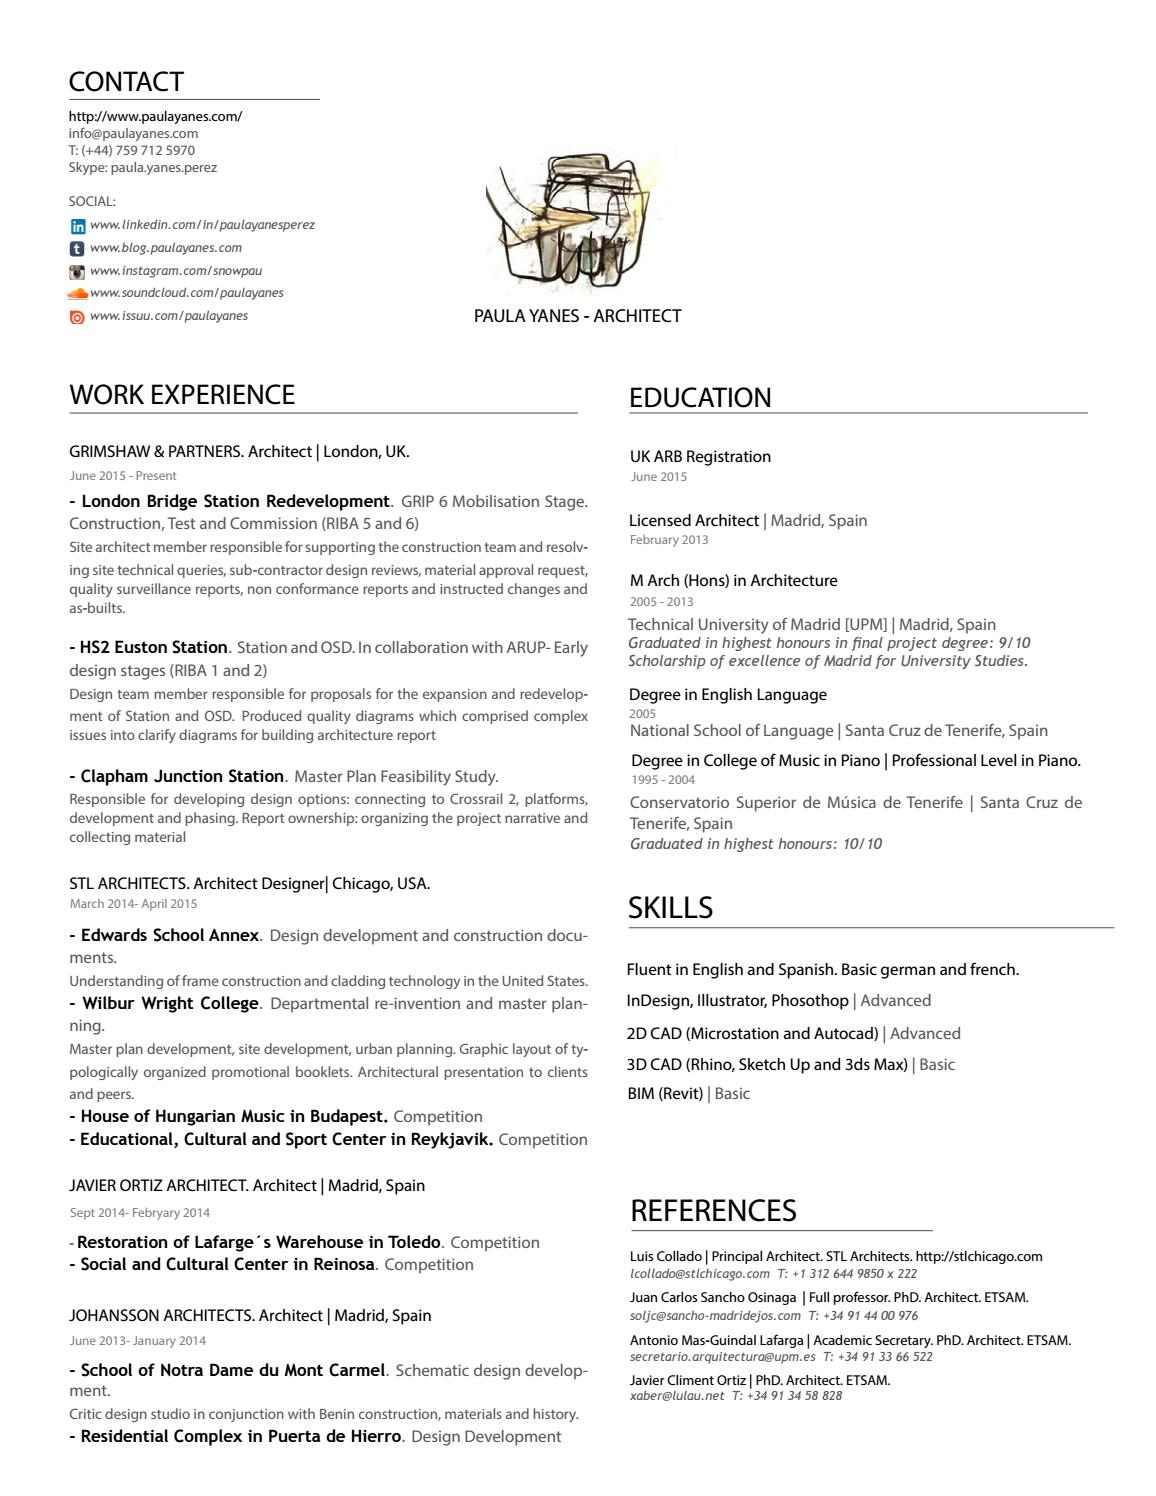 cv-resume paulayanes architect by paula yanes